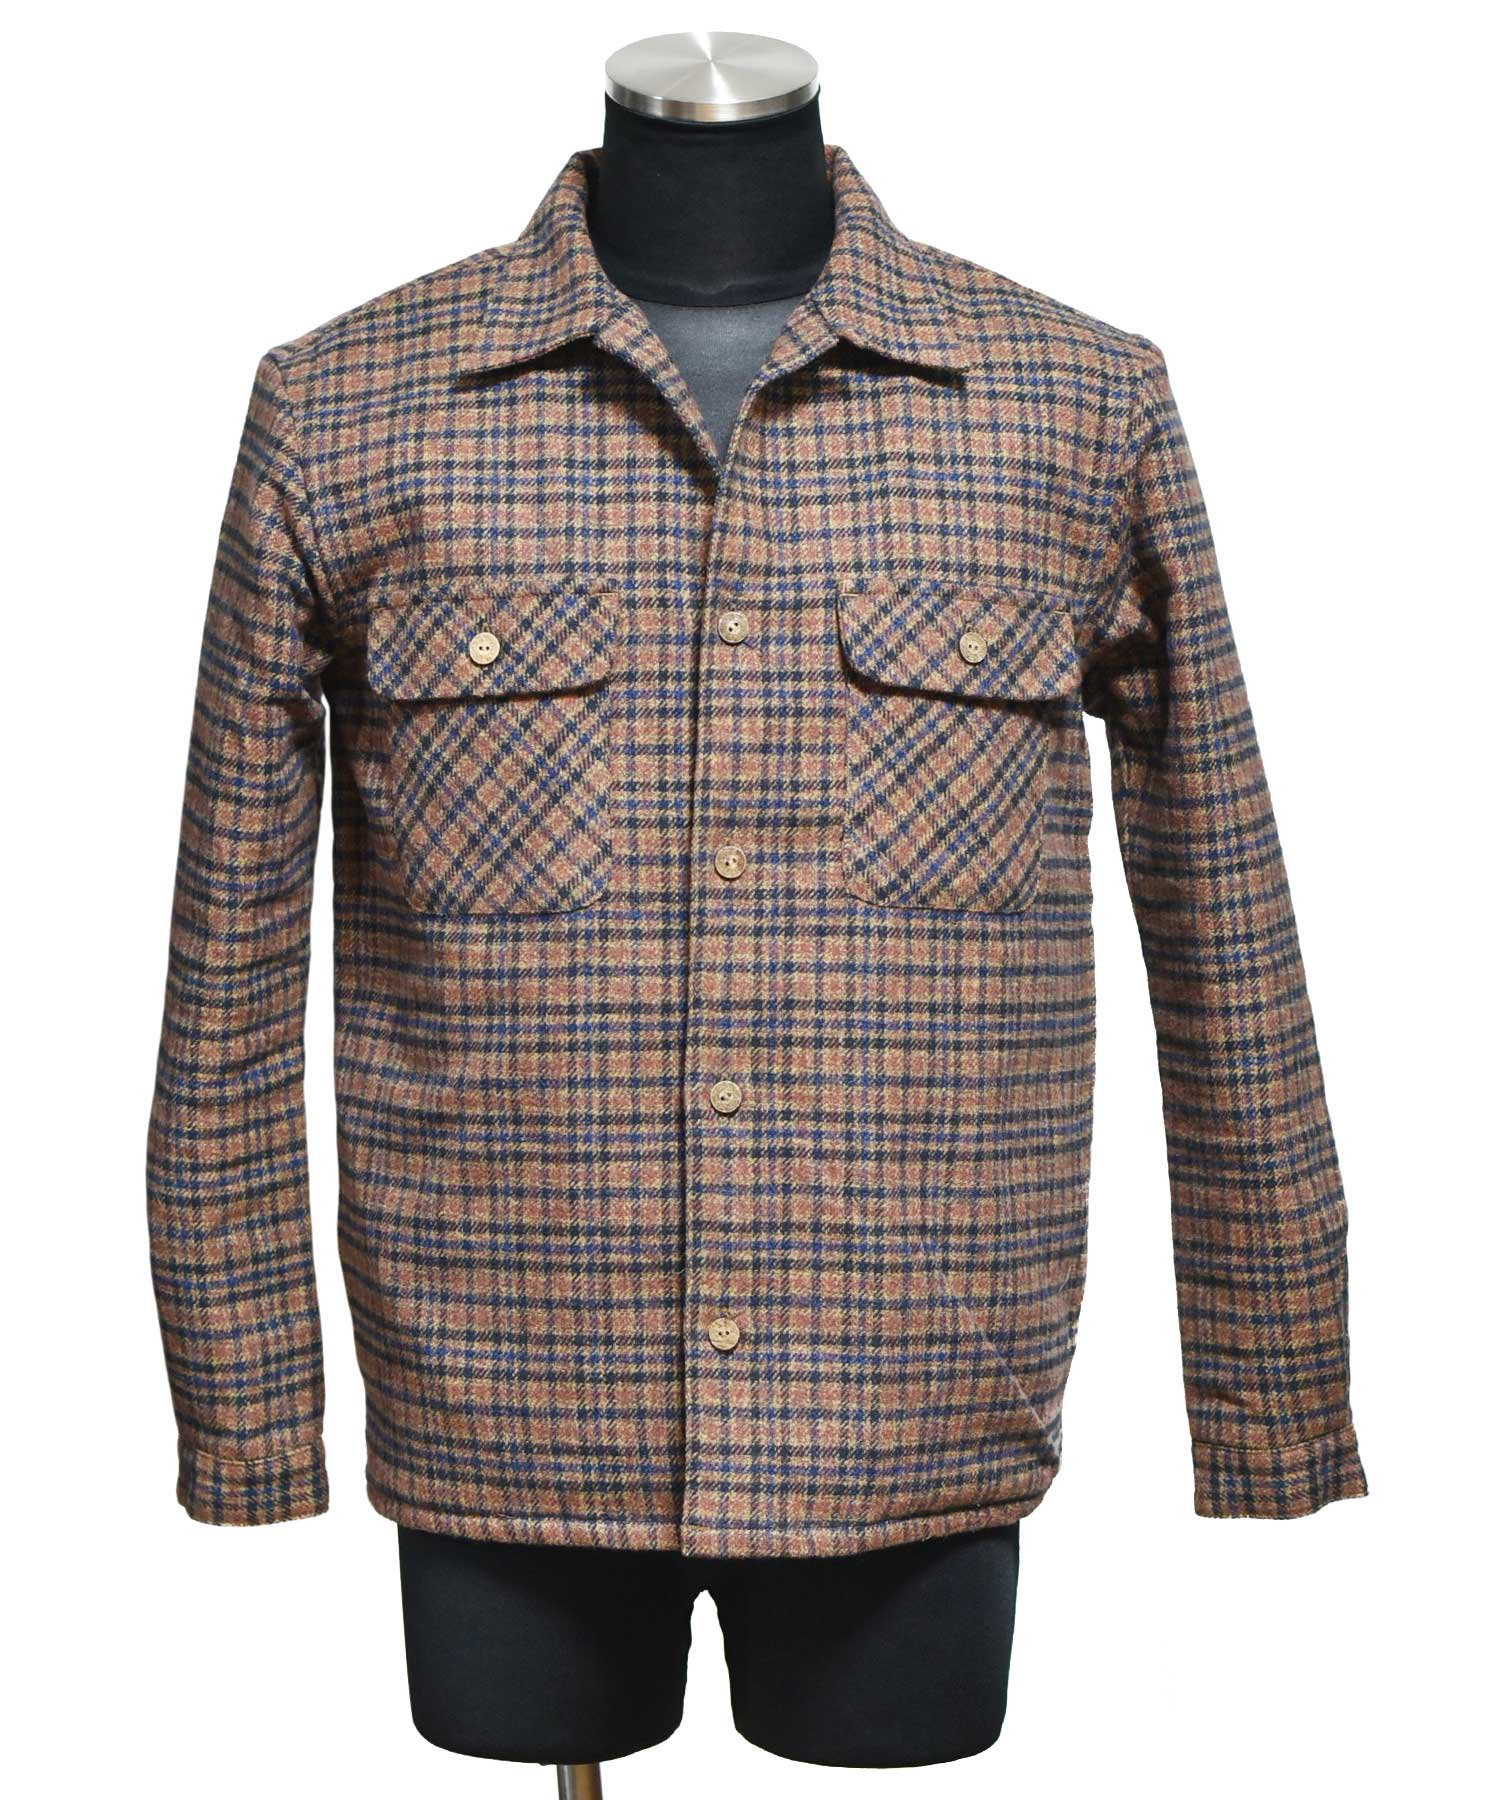 ARIGATO FAKKYU - アリガトファッキュ SHIRT JACKET / BROWN<img class='new_mark_img2' src='https://img.shop-pro.jp/img/new/icons5.gif' style='border:none;display:inline;margin:0px;padding:0px;width:auto;' />